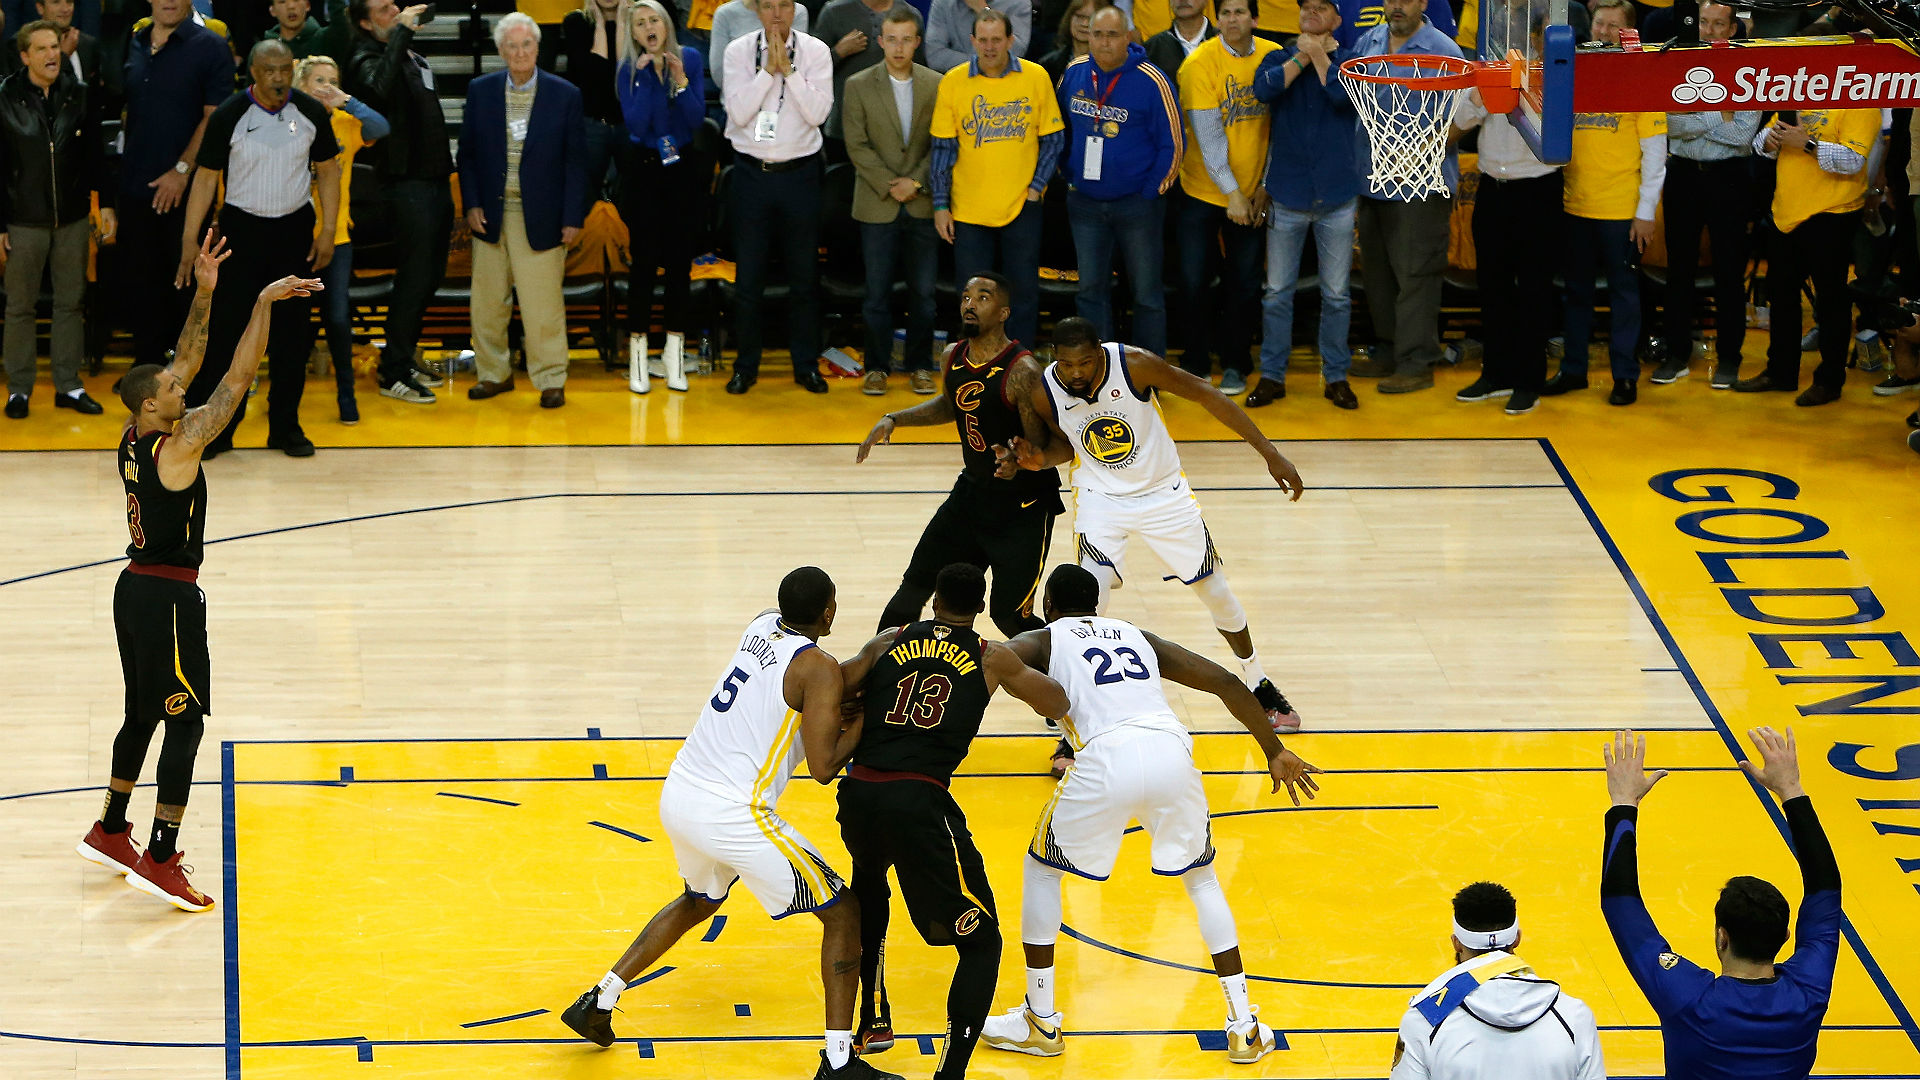 Warriors shoot well, Cavs stay close in Game 2